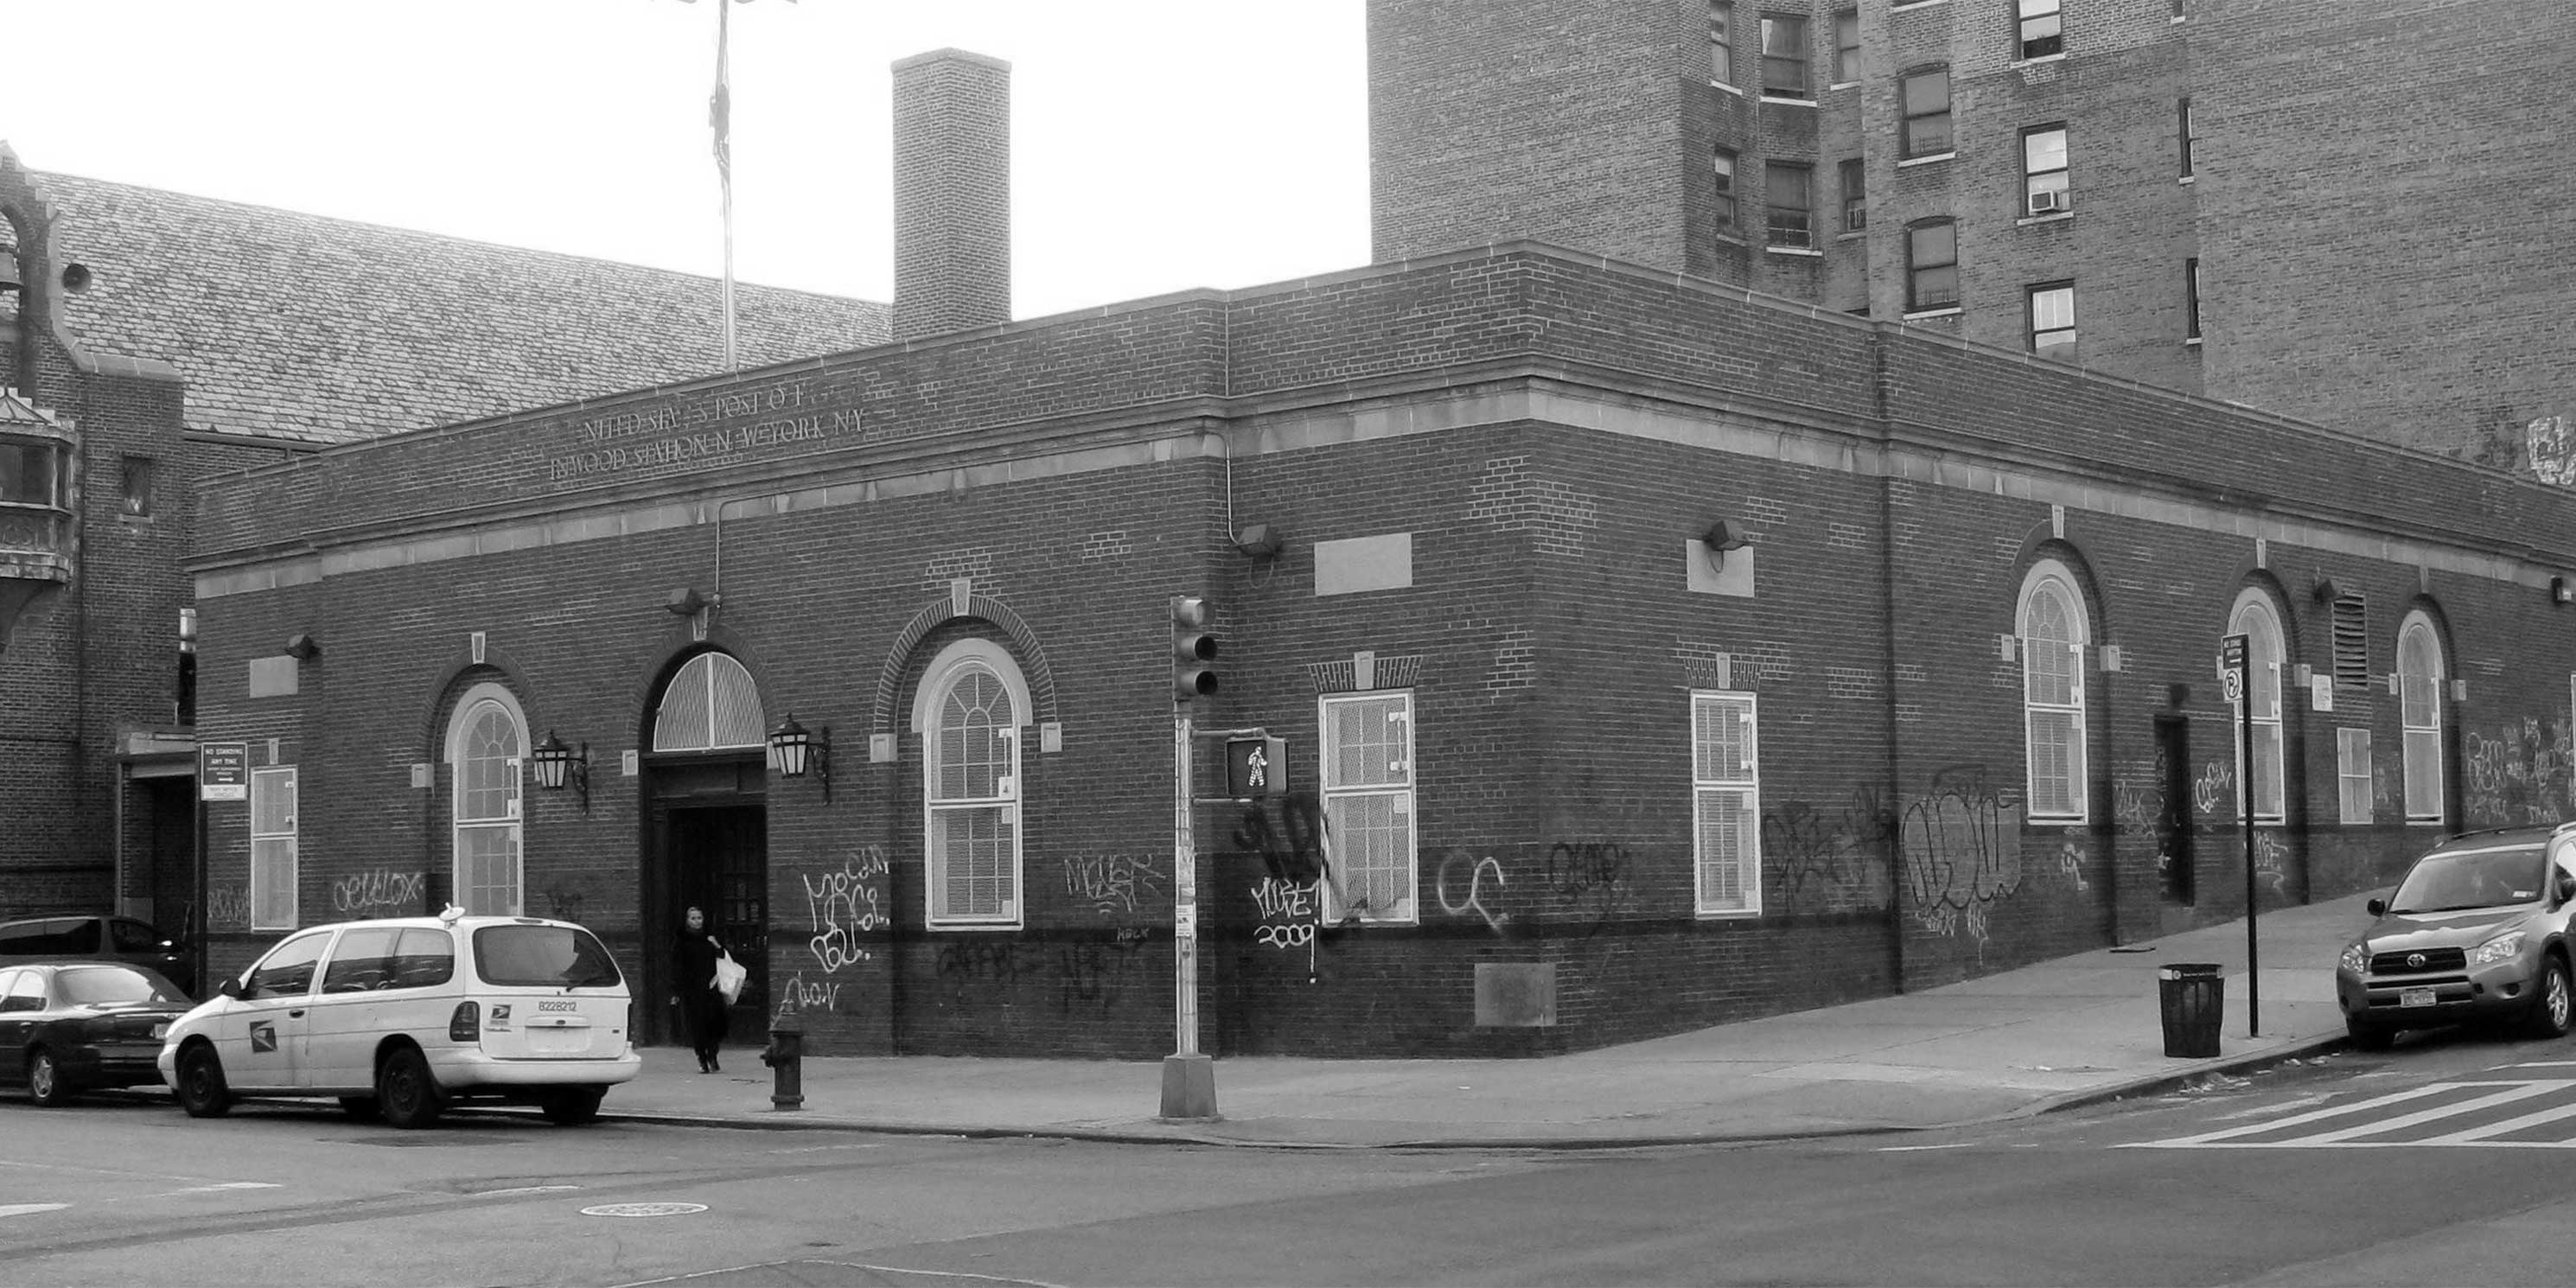 The Inwood Post Office. Photo: Wikimedia Commons, Americasroof.